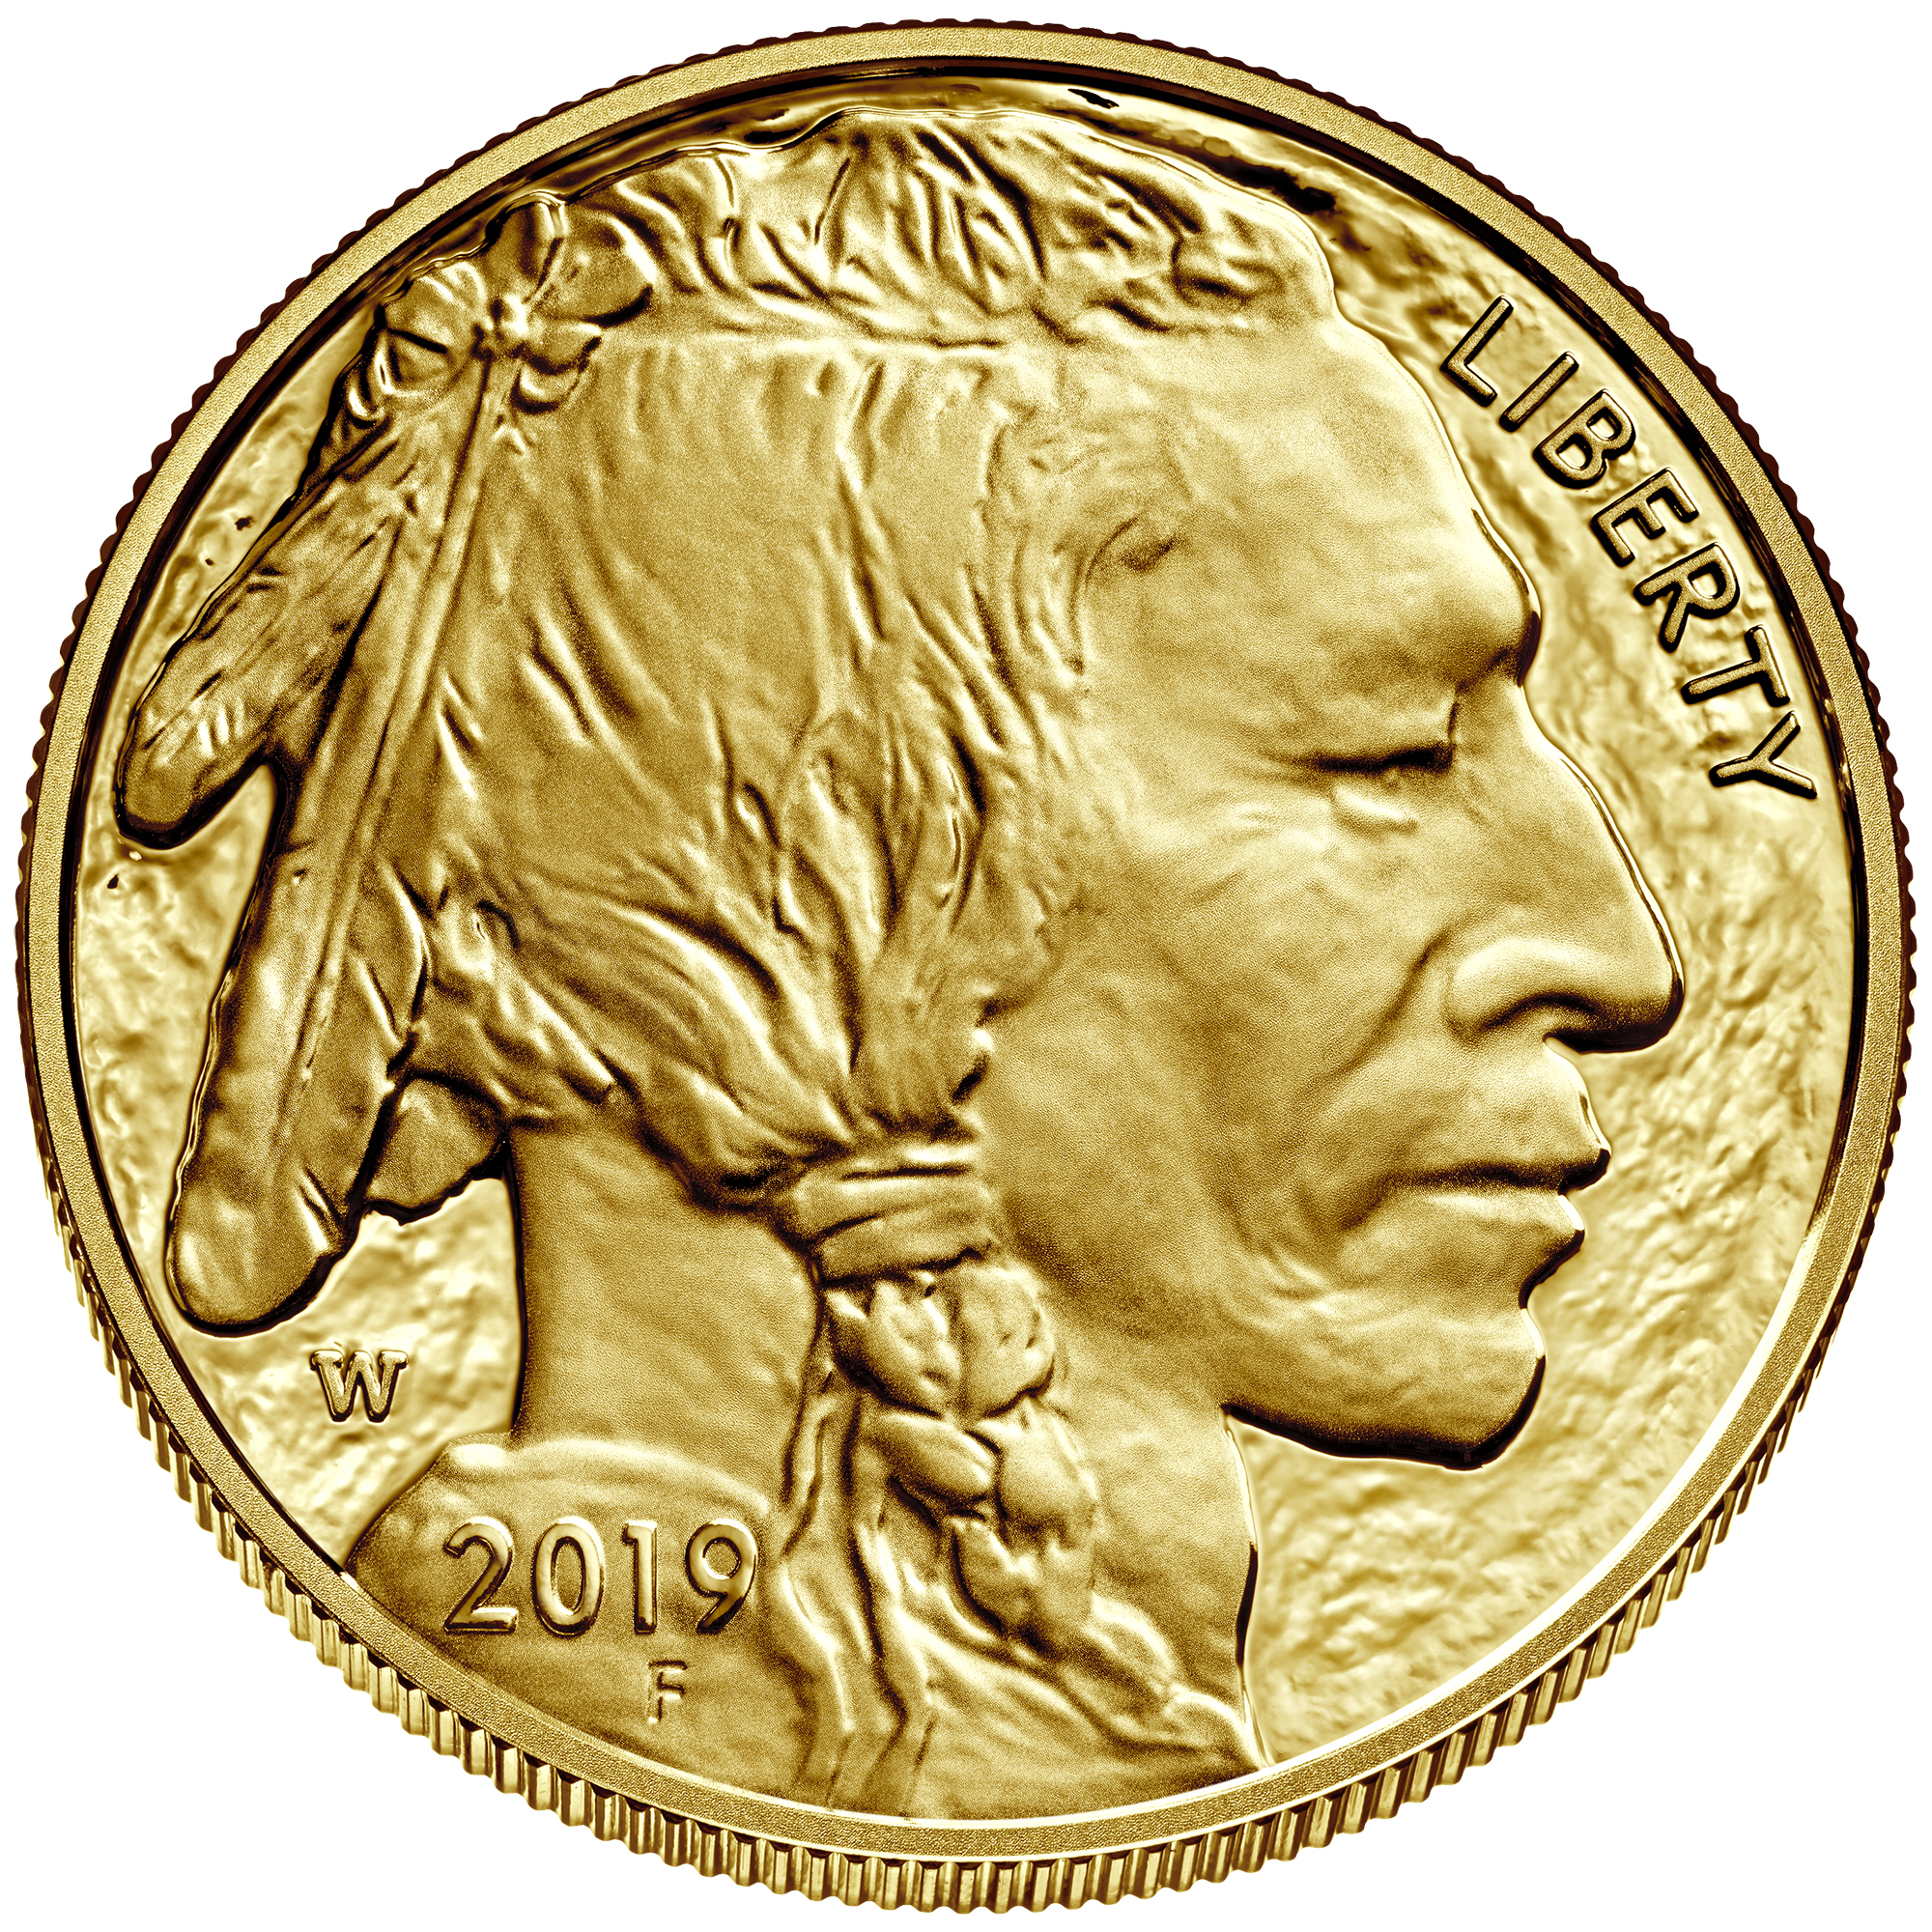 2019 American Buffalo One Ounce Gold Proof Coin Obverse